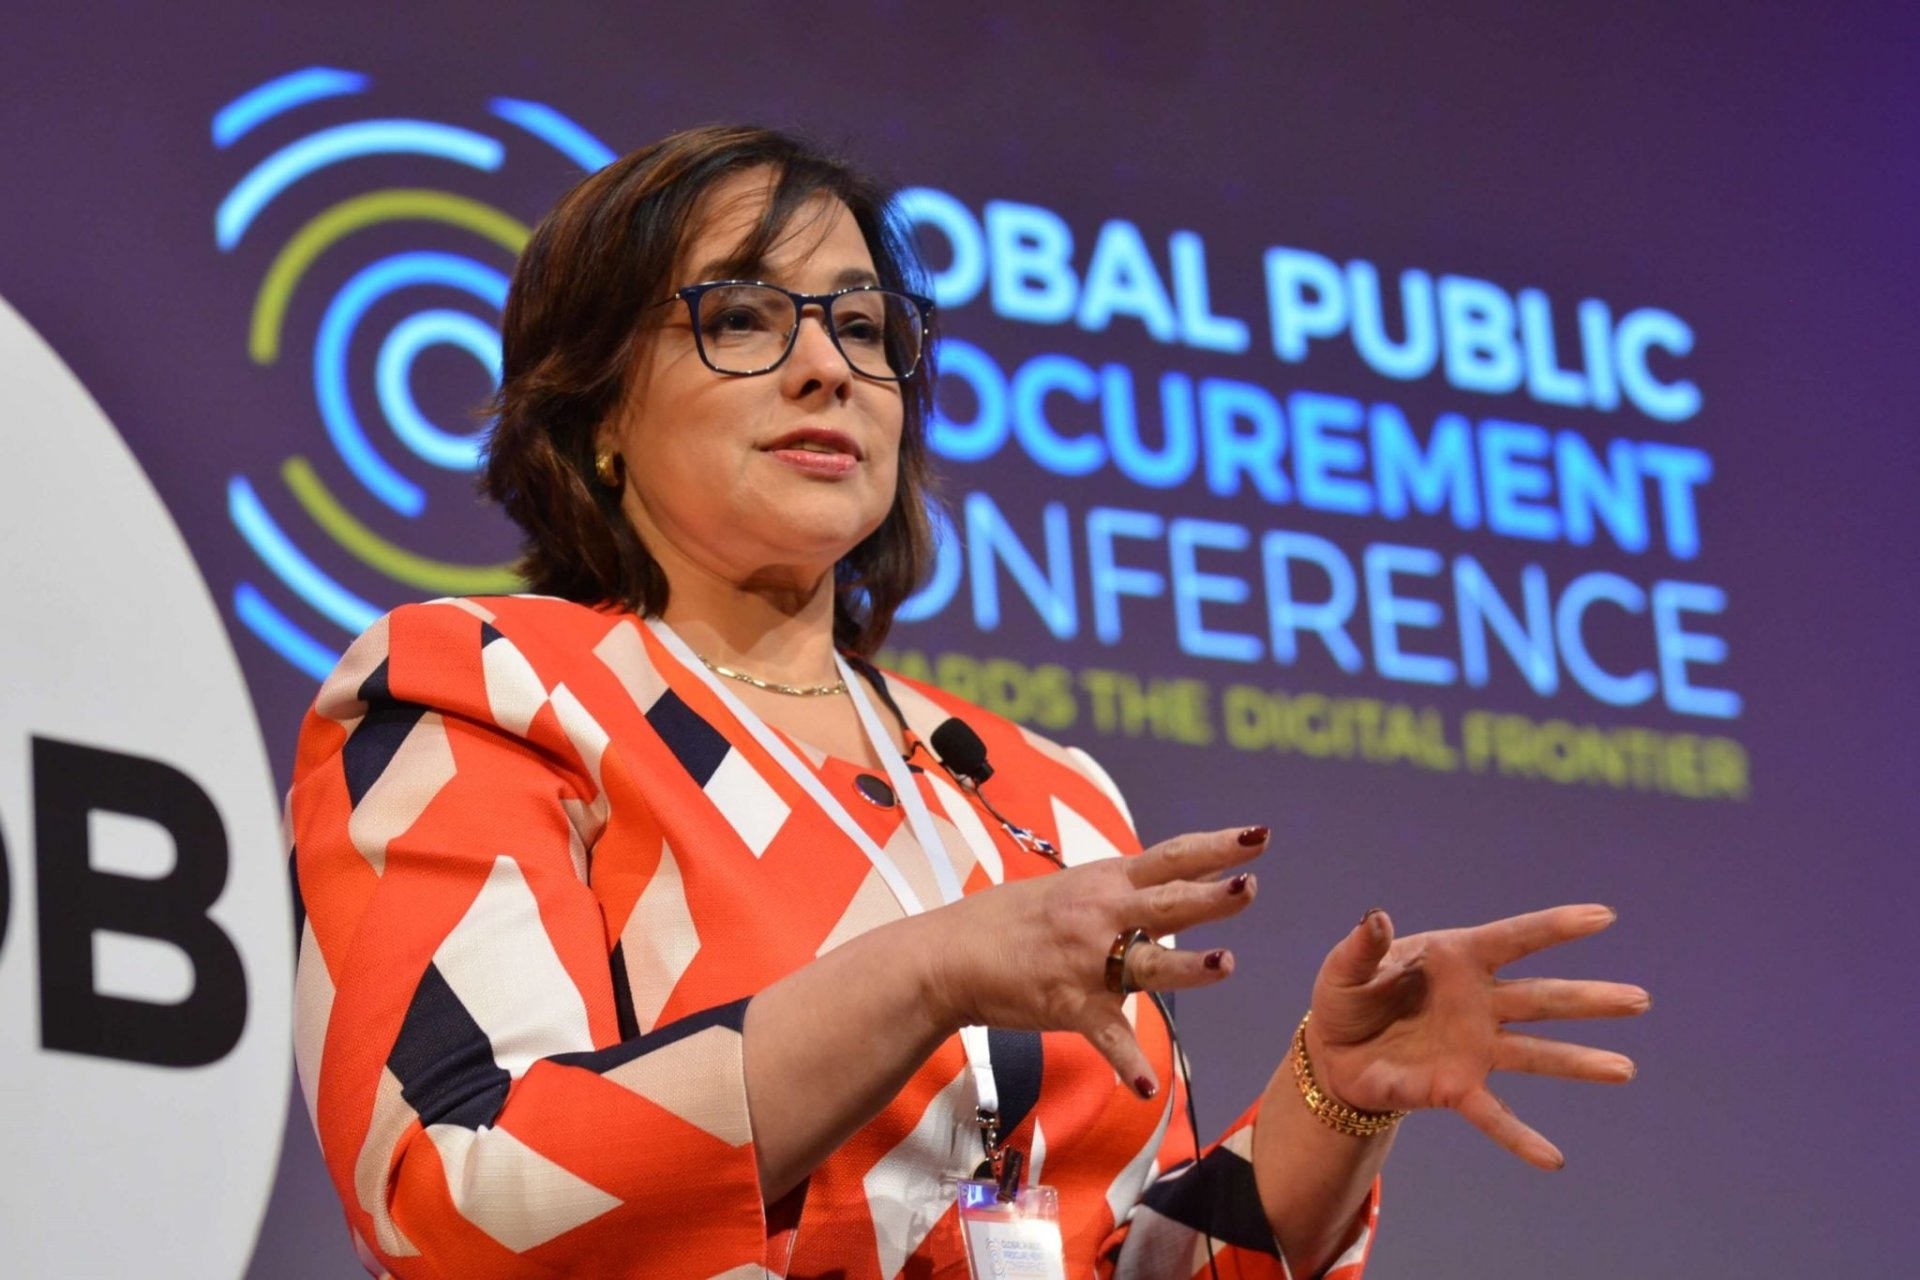 Global Public Procurement Conference Part 3 – The Human Touch